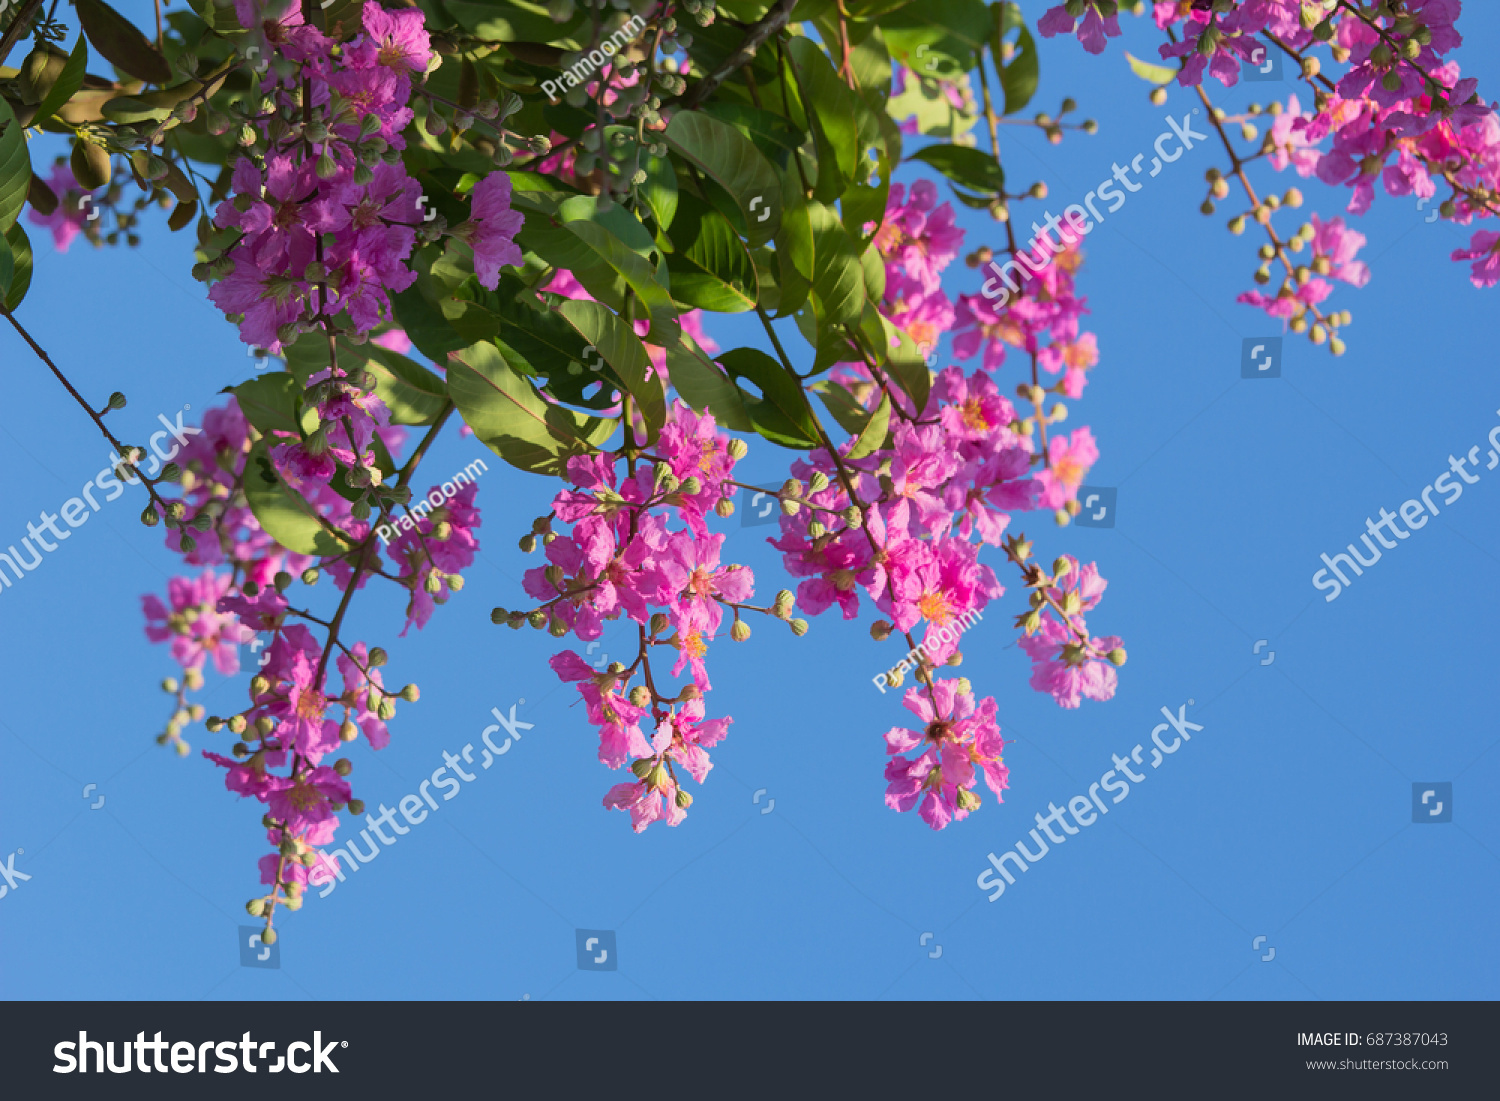 Purple flowers lagerstroemia floribunda on tropical stock photo purple flowers lagerstroemia floribunda on tropical tree with blue sky background izmirmasajfo